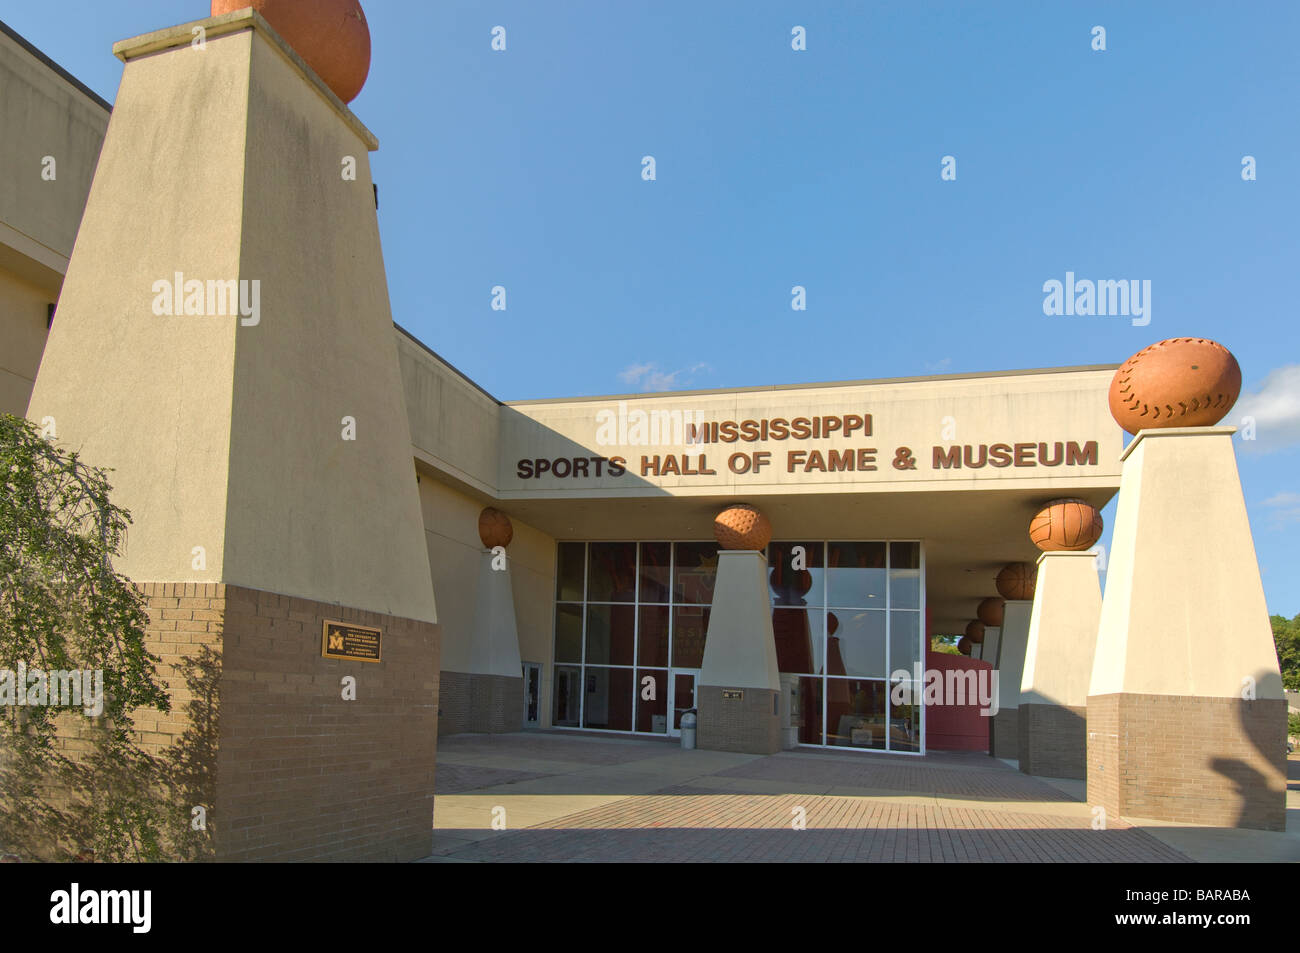 Mississippi Sports Hall of Fame and Museum in Jackson Mississippi - Stock Image